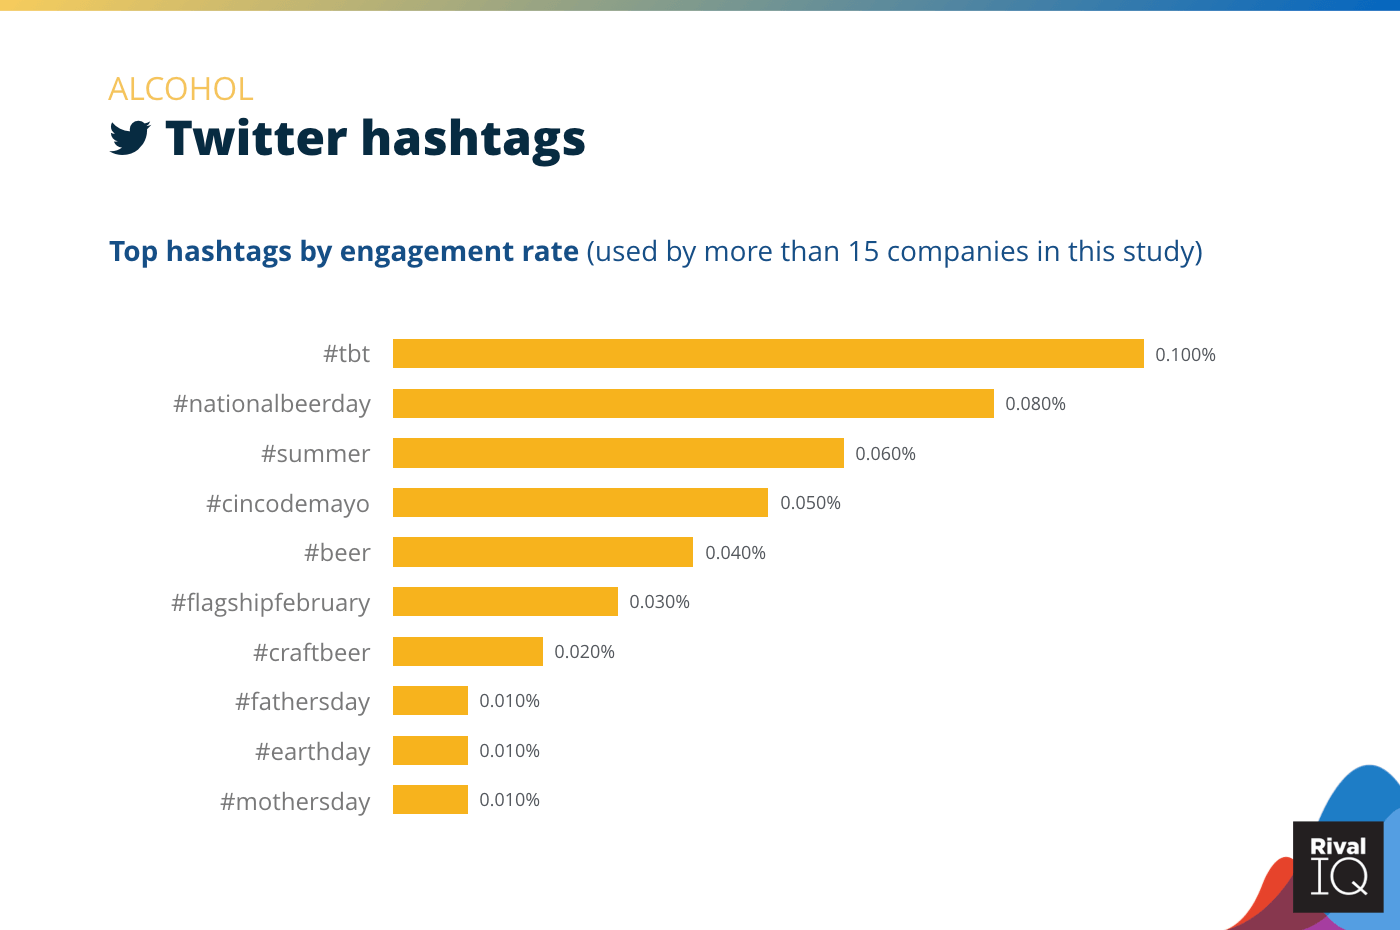 Chart of Top Twitter hashtags by engagement rate, Alcohol